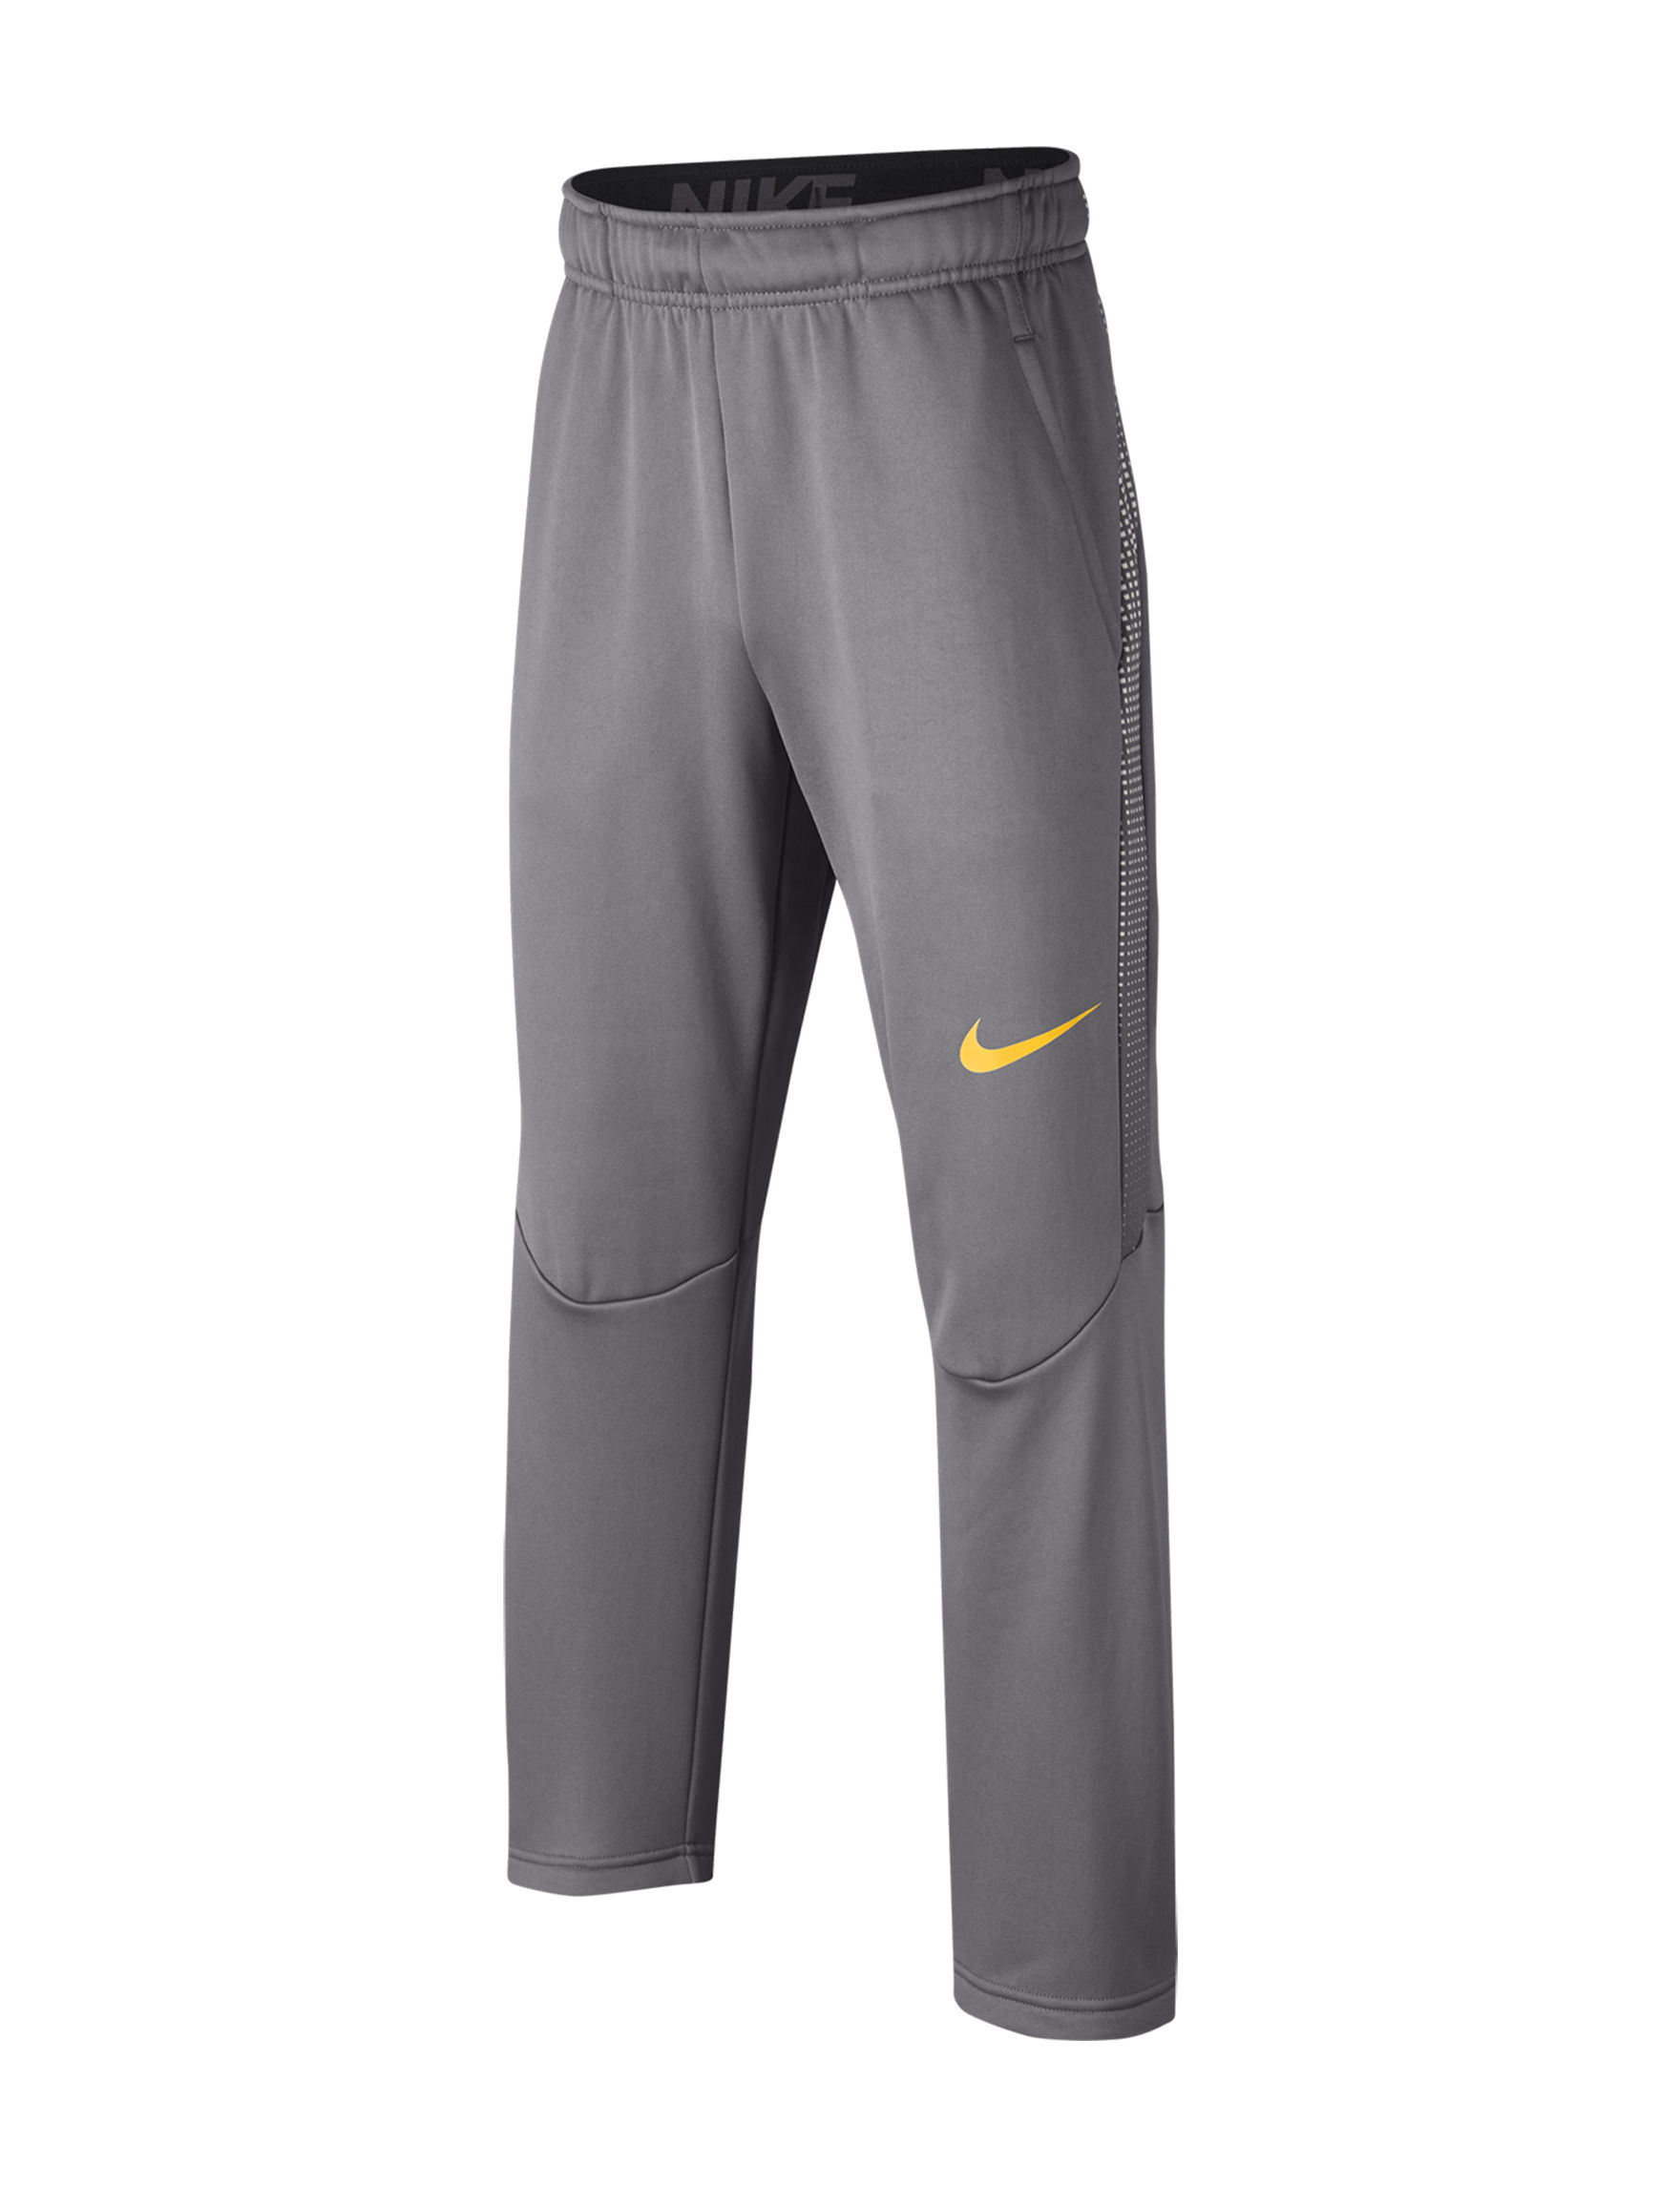 Nike Grey Relaxed